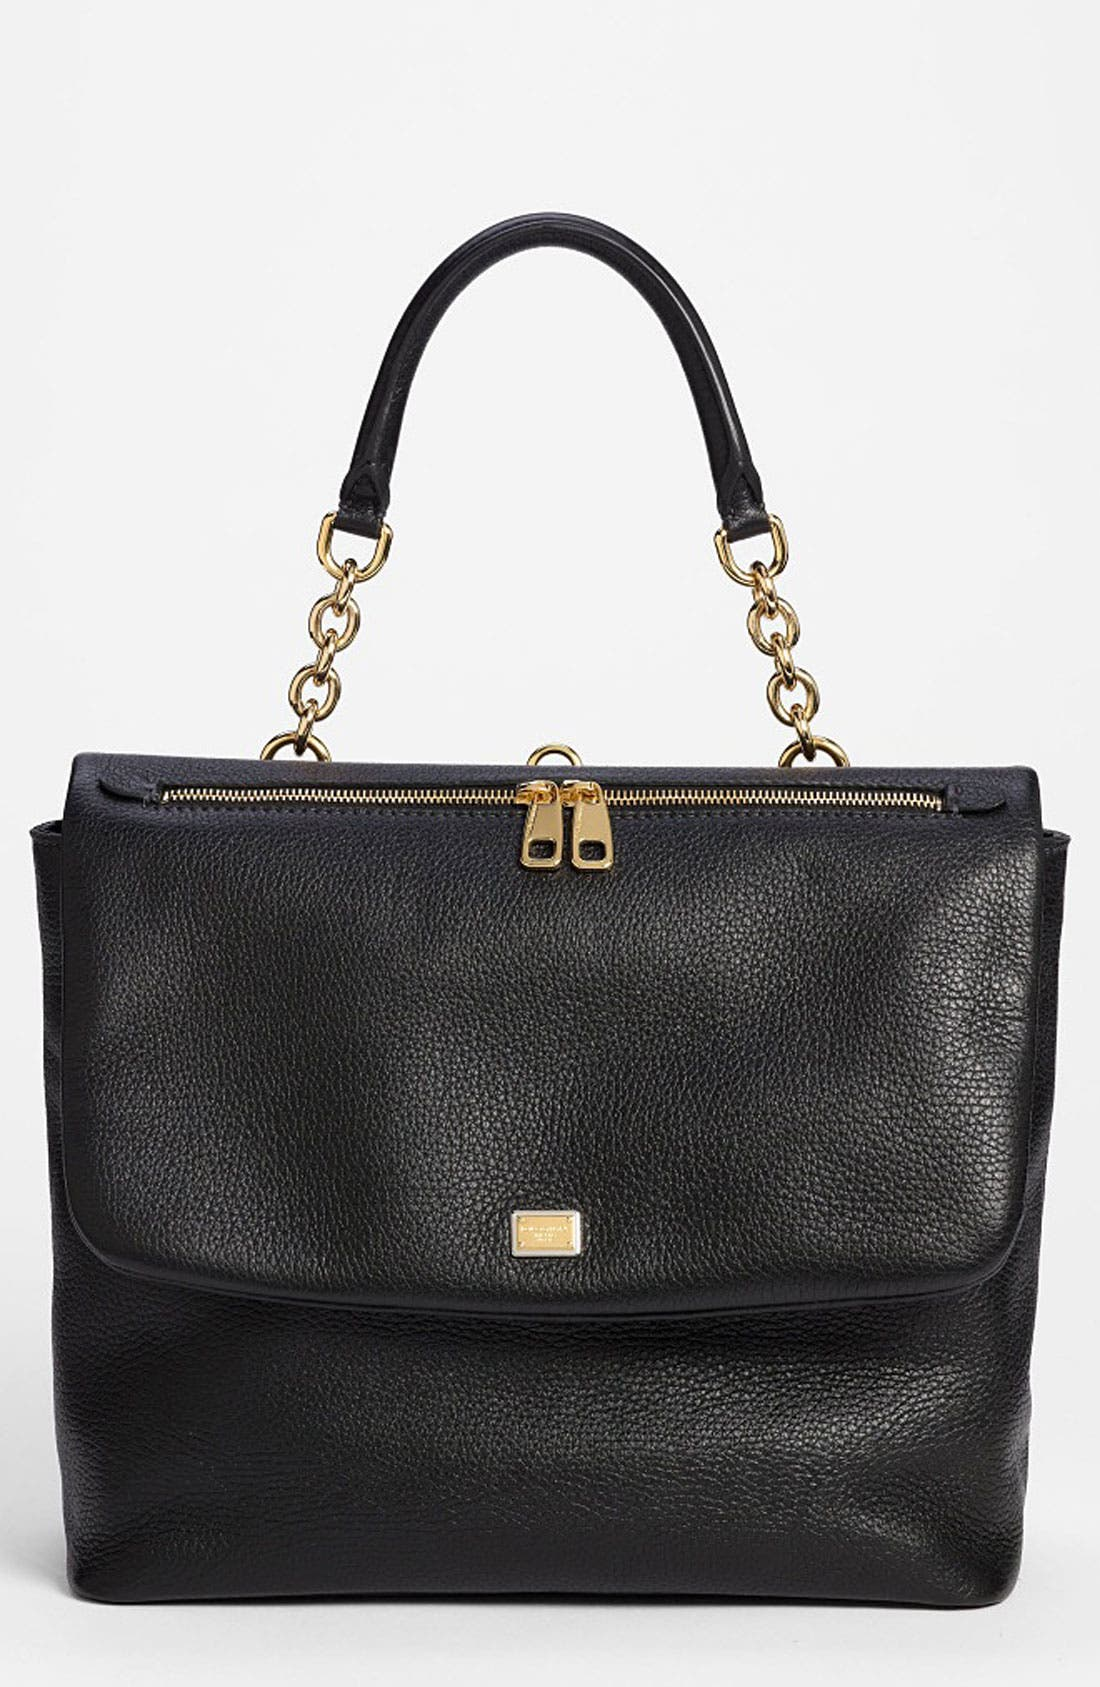 Main Image - Dolce&Gabbana 'Miss Emma' Leather Shoulder Bag